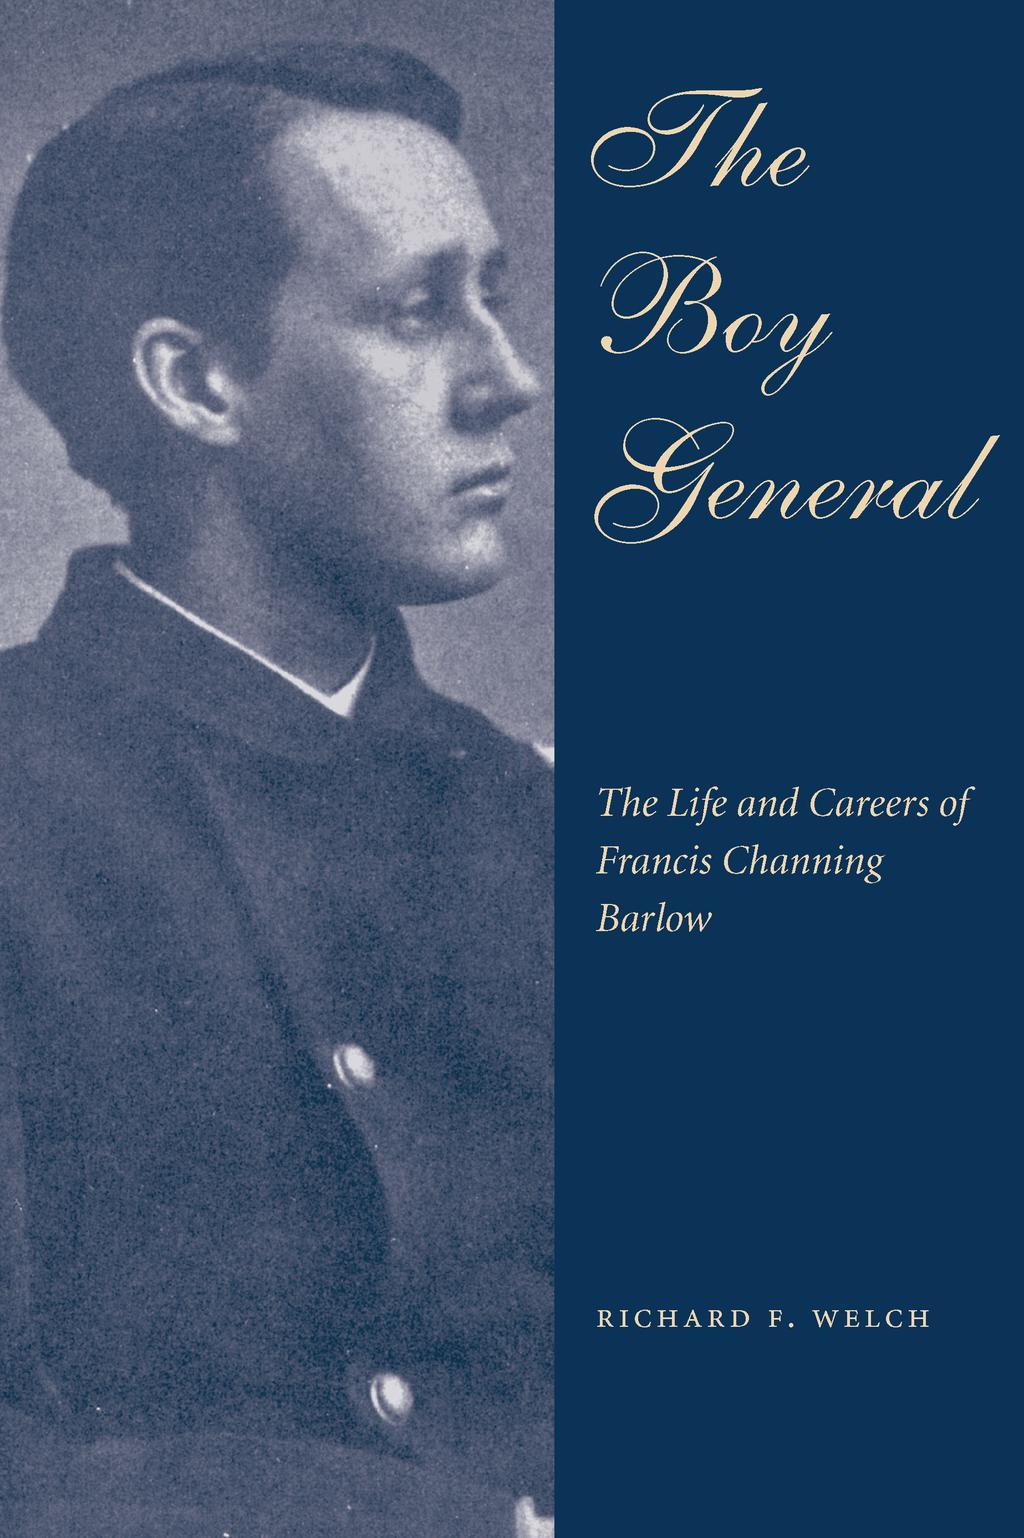 The Boy General: The Life and Careers of Francis Channing Barlow